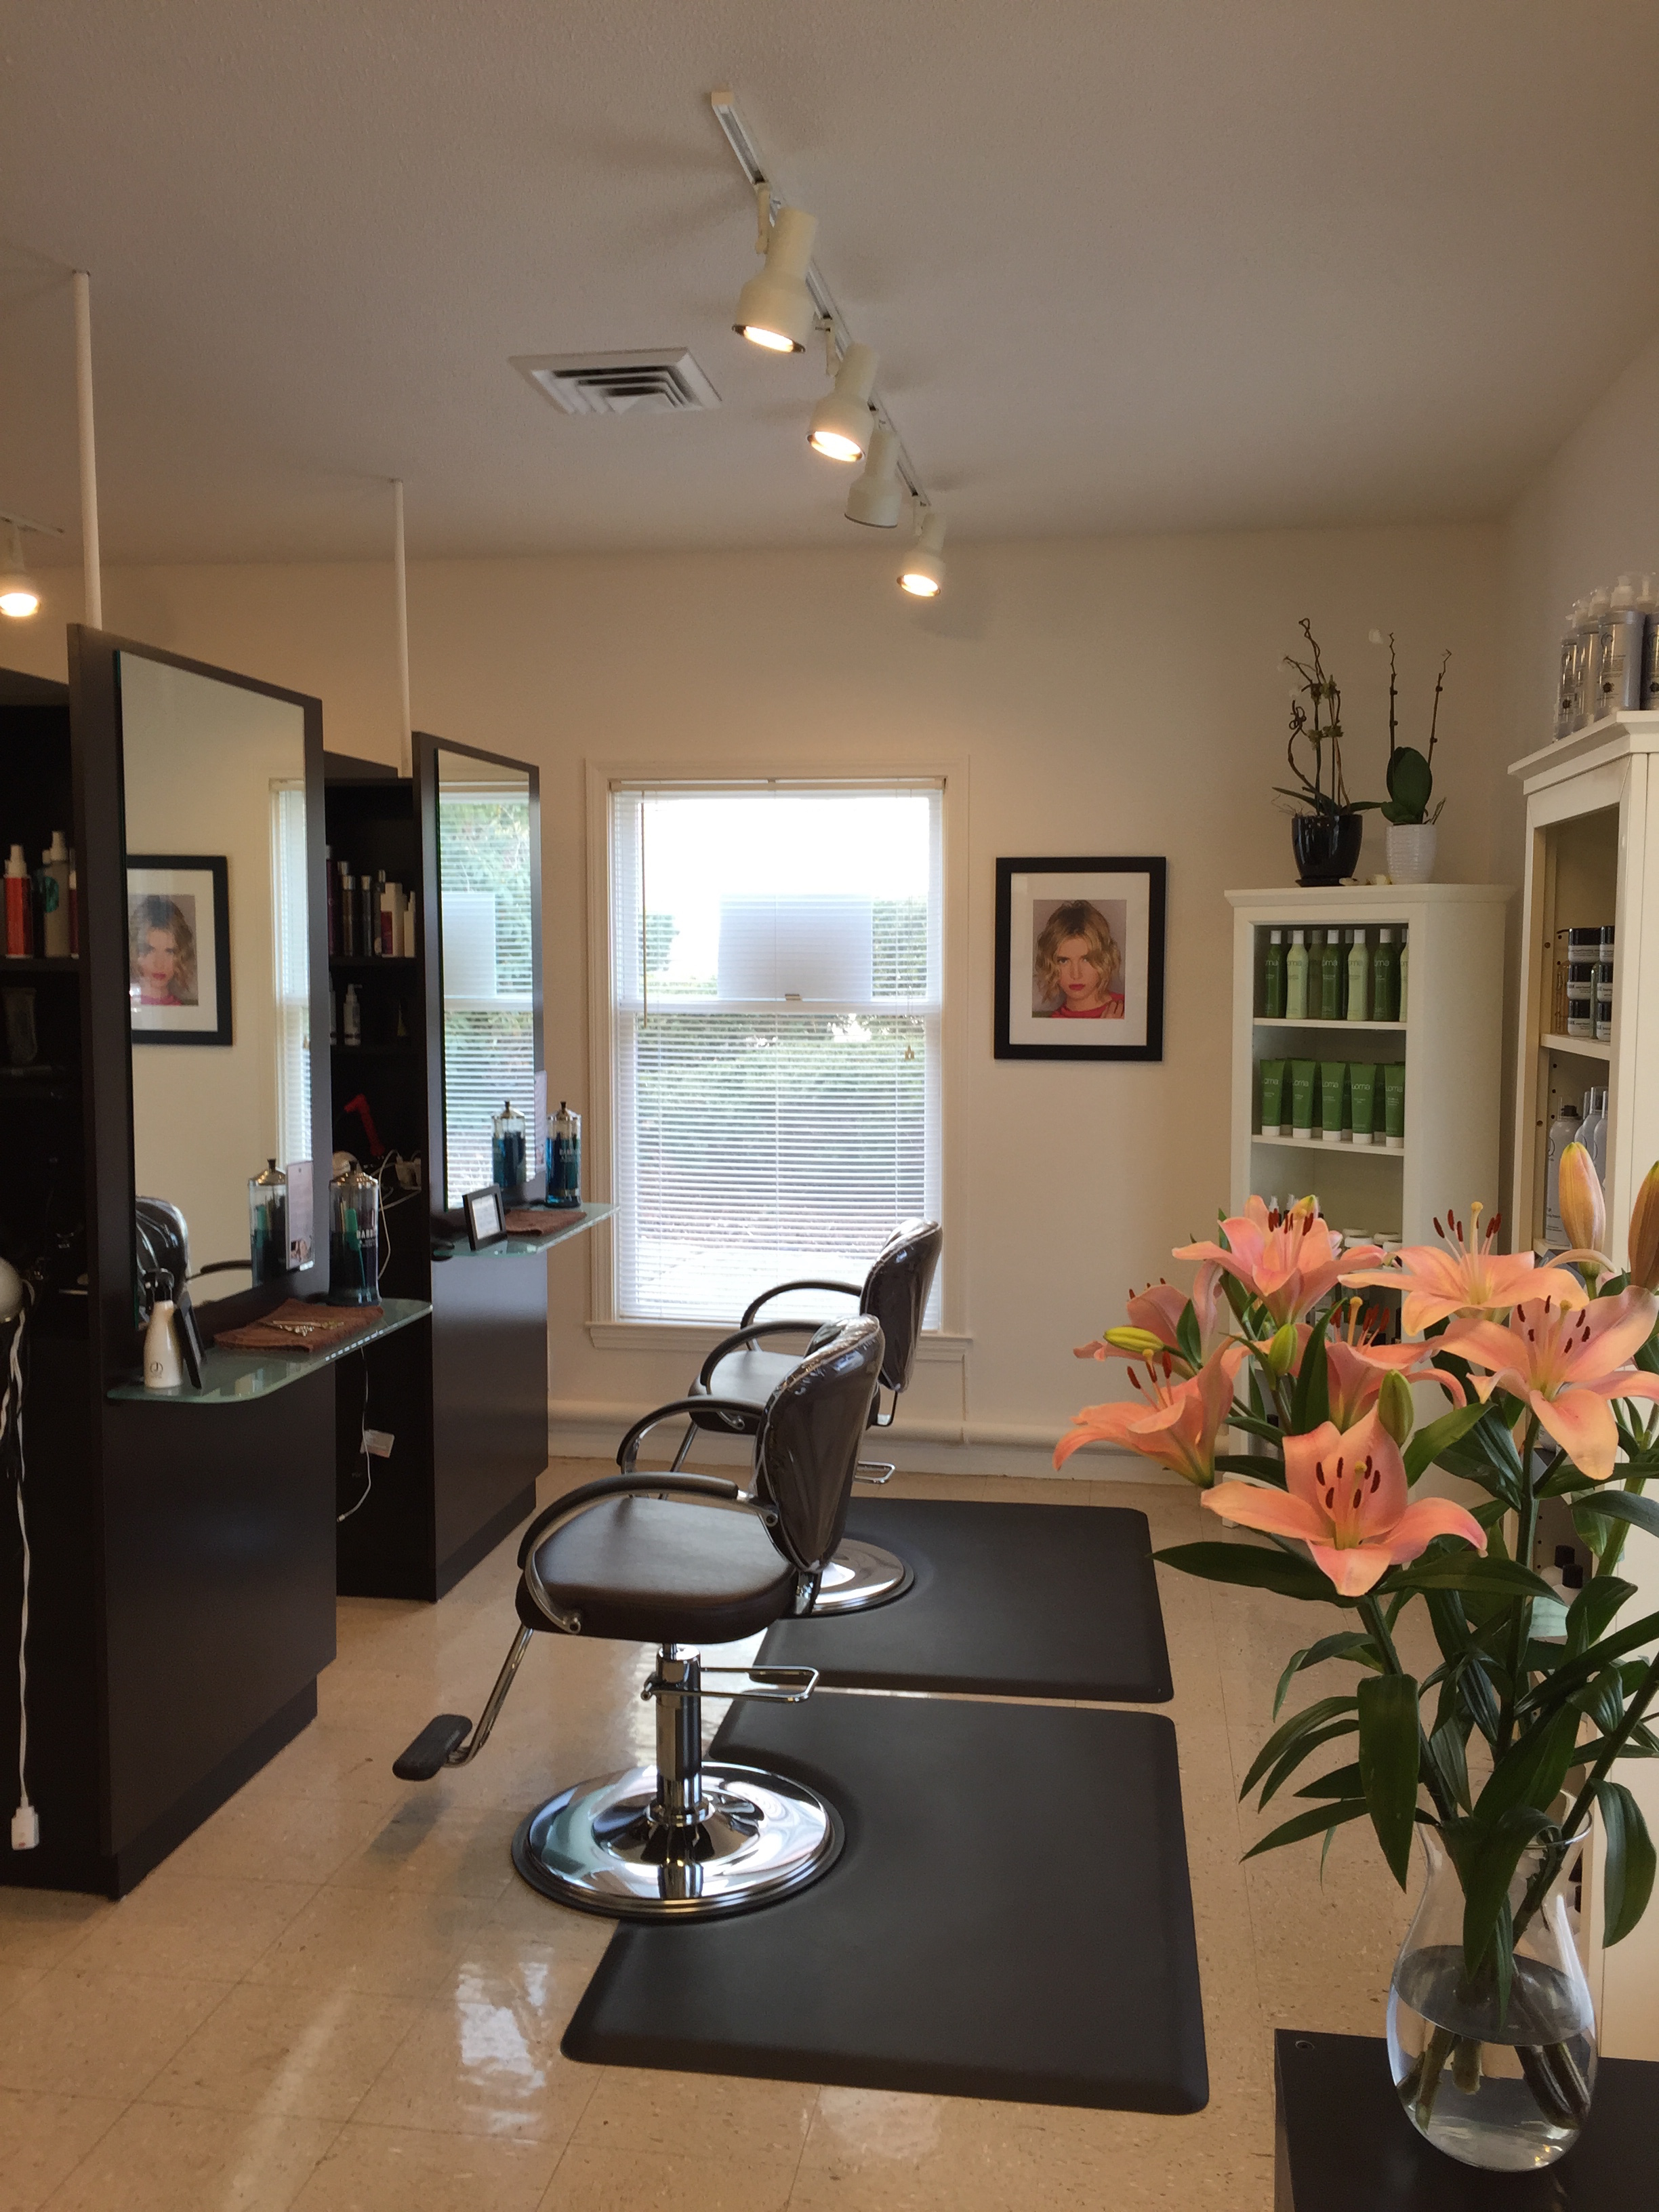 Photo of Inside of Clippers Hair Salon Guilford CT